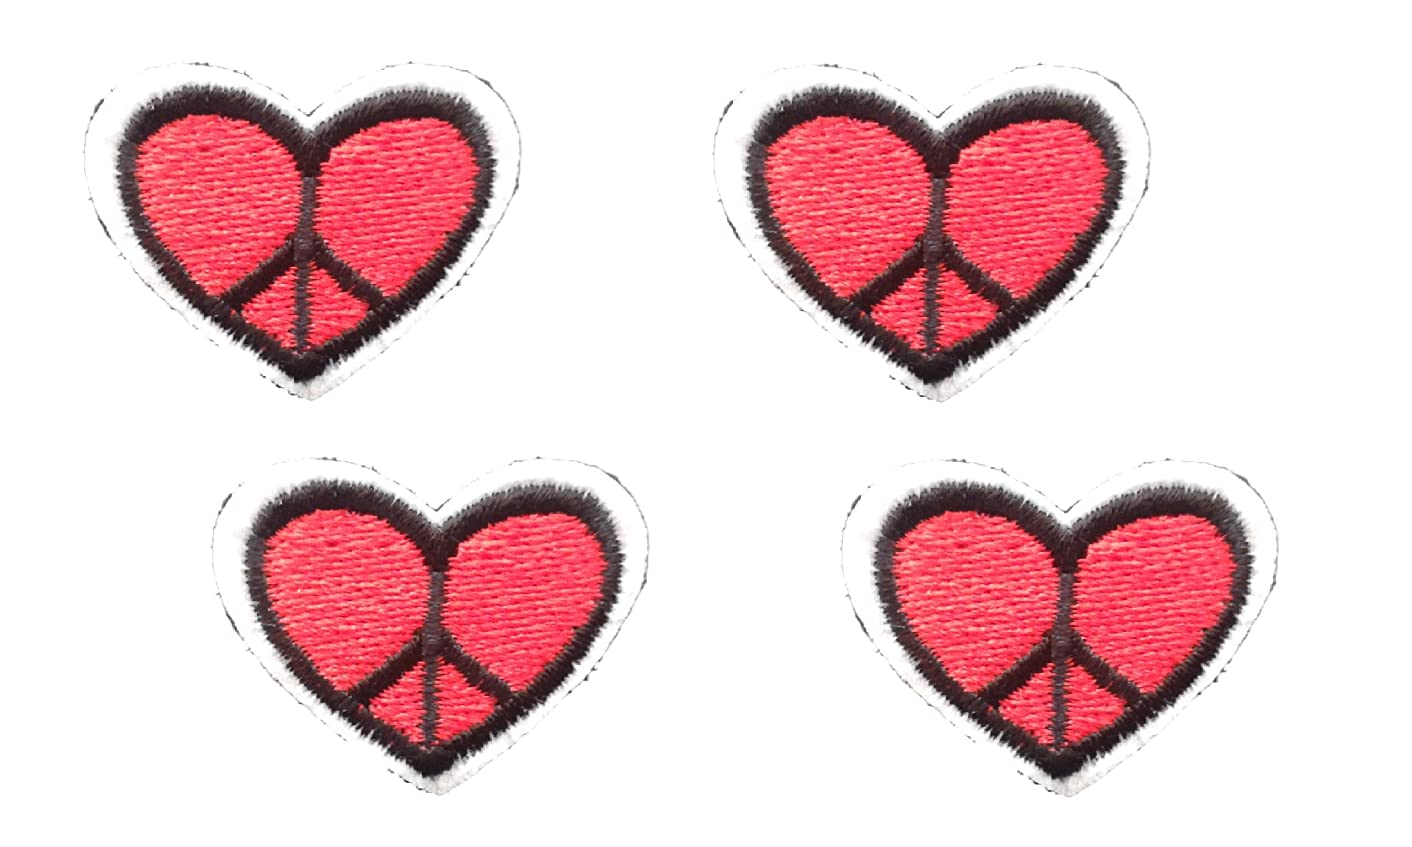 4 small pieces PEACE HEART Applique Embroidered Motif Fabric Love Valentine Scrapbooking Decal 1.2 x 1.1 inches (3 x 2.8 cm)